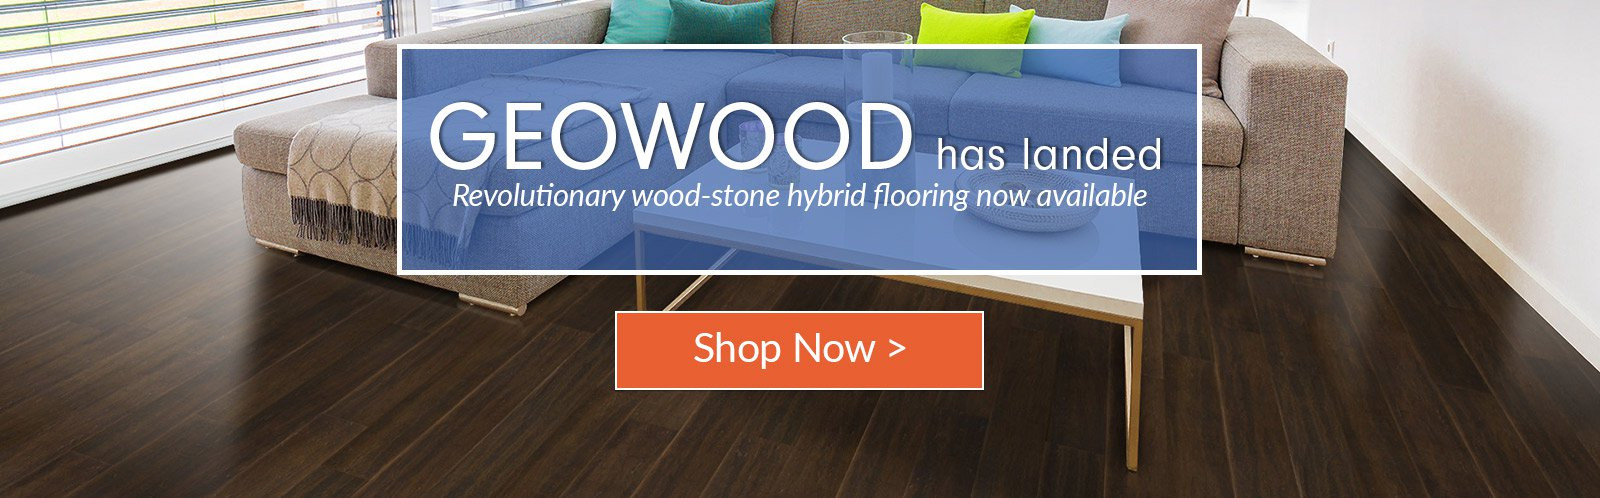 engineered hardwood flooring dalton ga of green building construction materials and home decor cali bamboo within geowood launch homepage slider